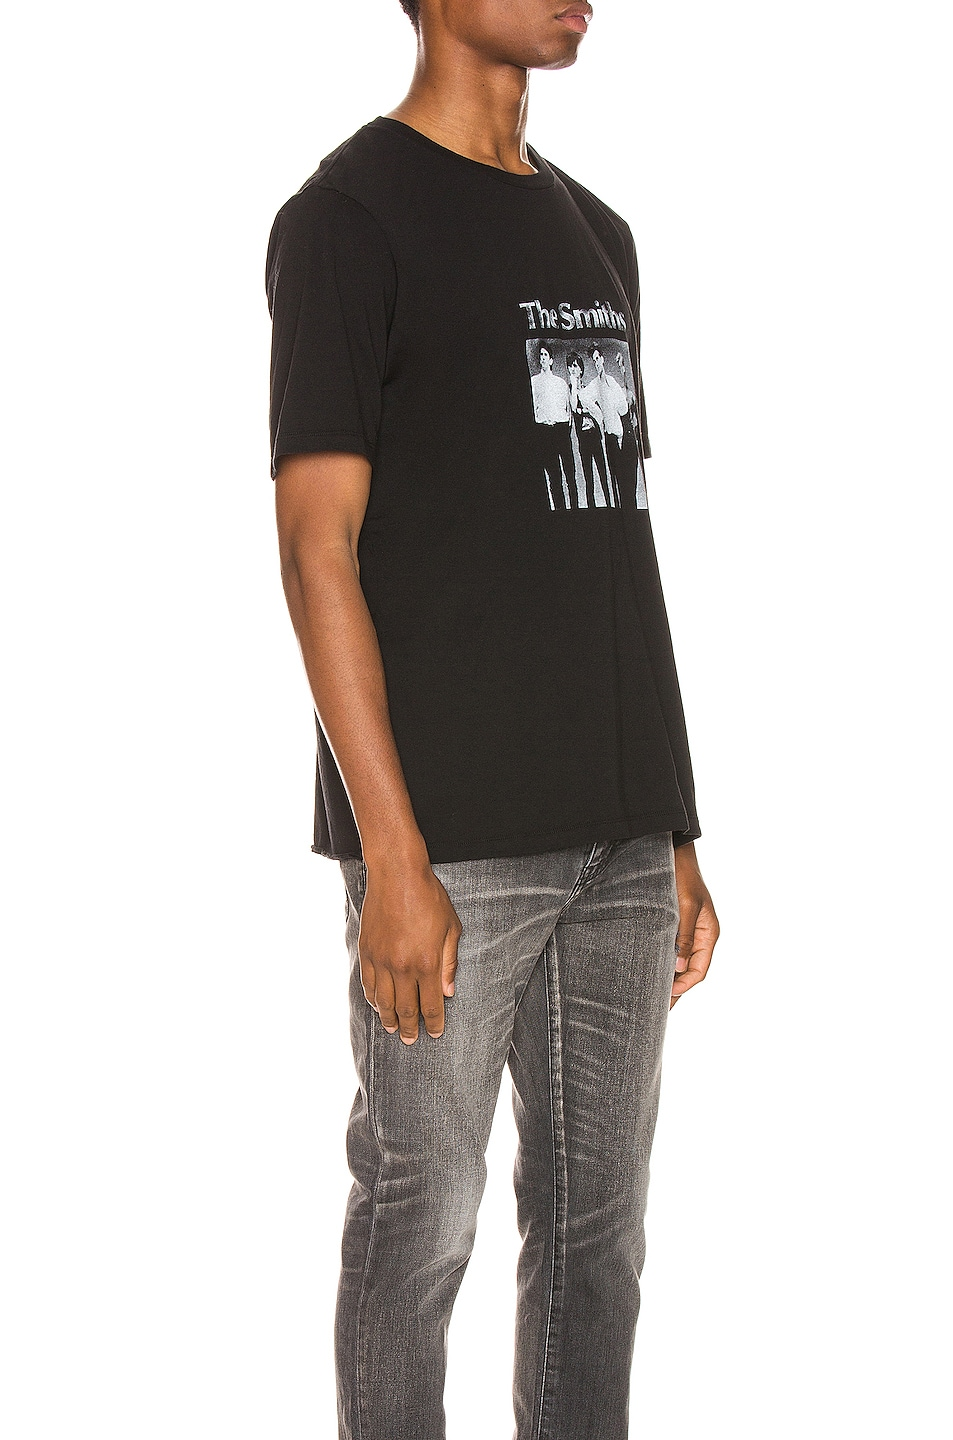 Image 2 of Saint Laurent The Smiths Tee in Black & Natural